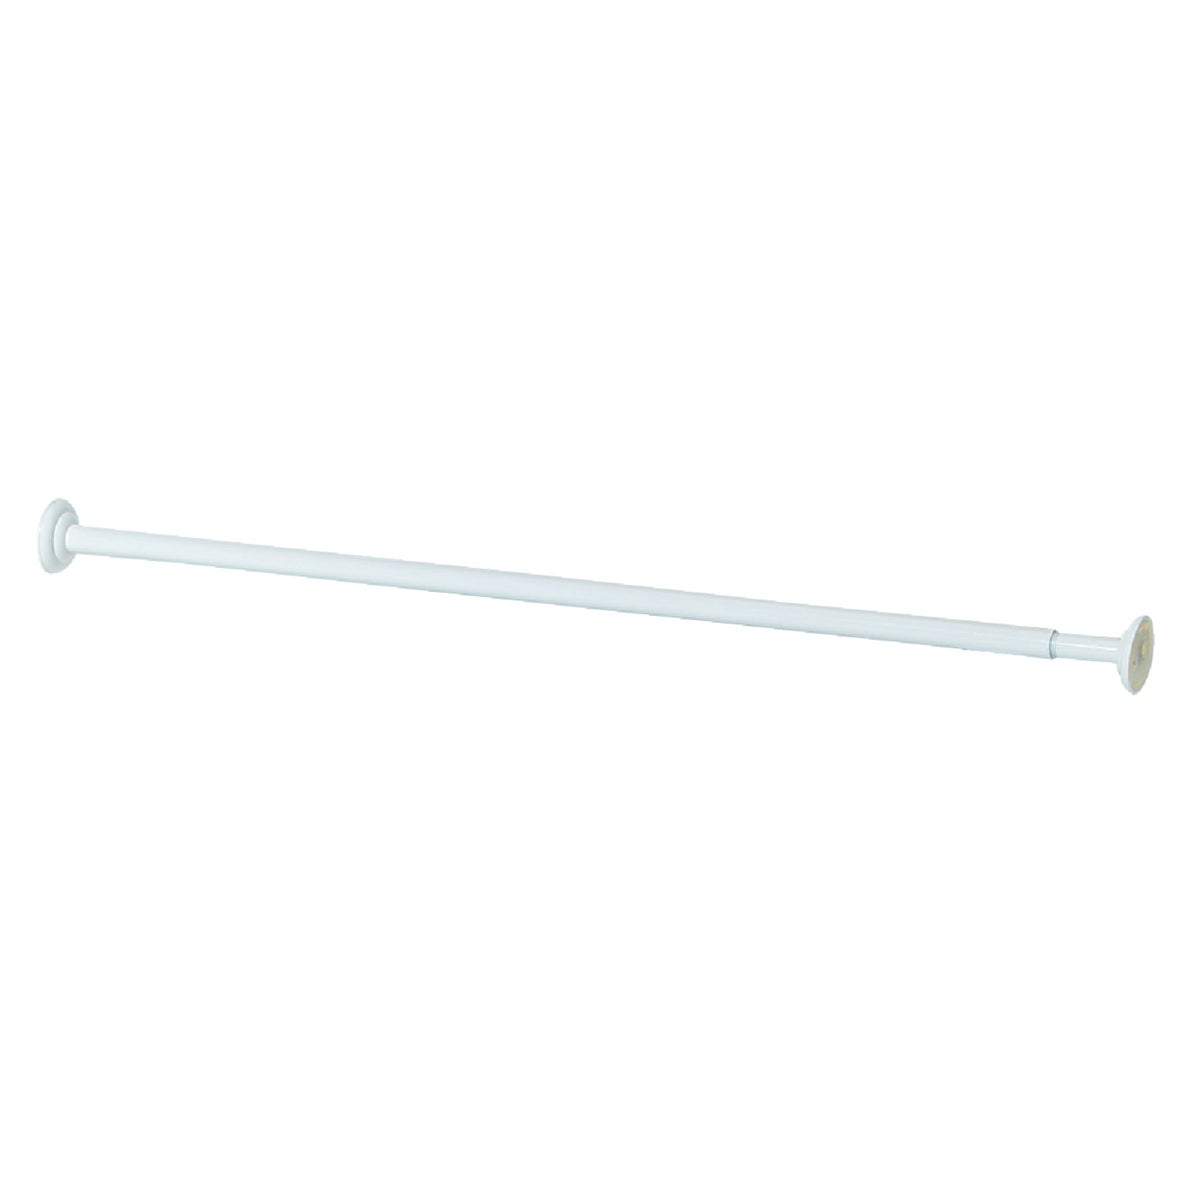 "72"" WHT SHOWER ROD - 653WW by Zenith Prod Corp"